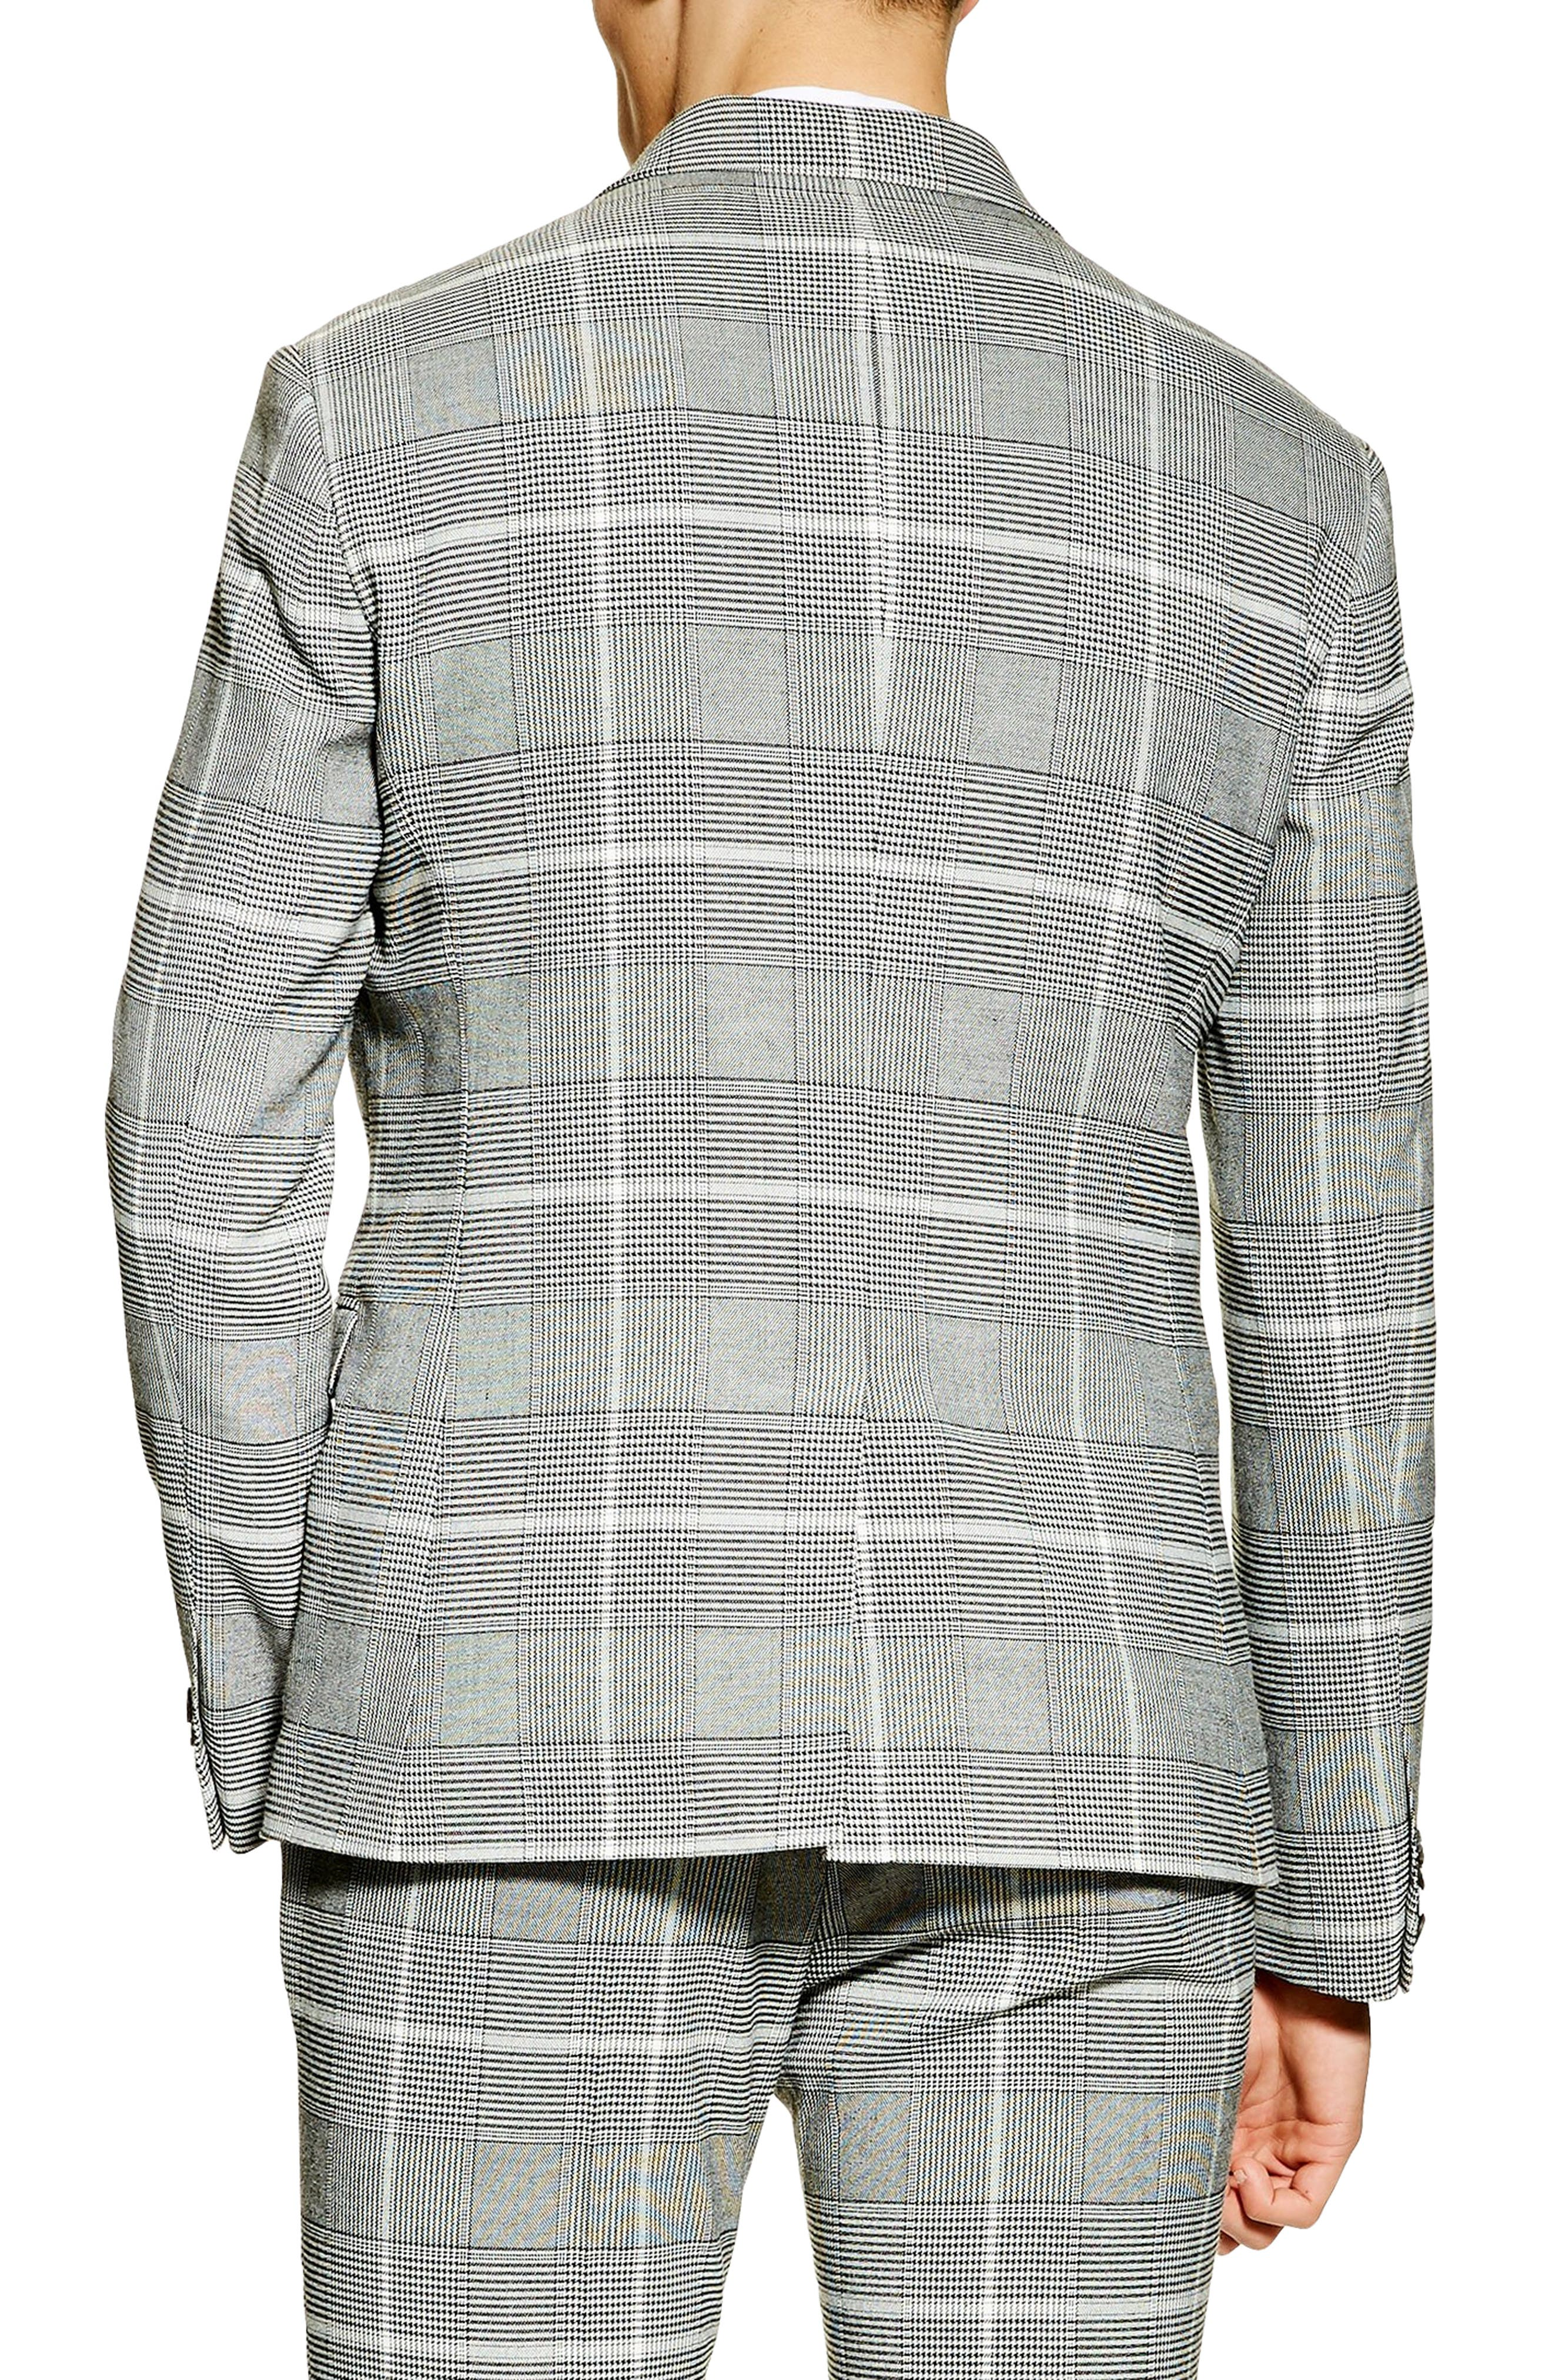 TOPMAN, Skinny Fit Check Suit Jacket, Alternate thumbnail 2, color, 020